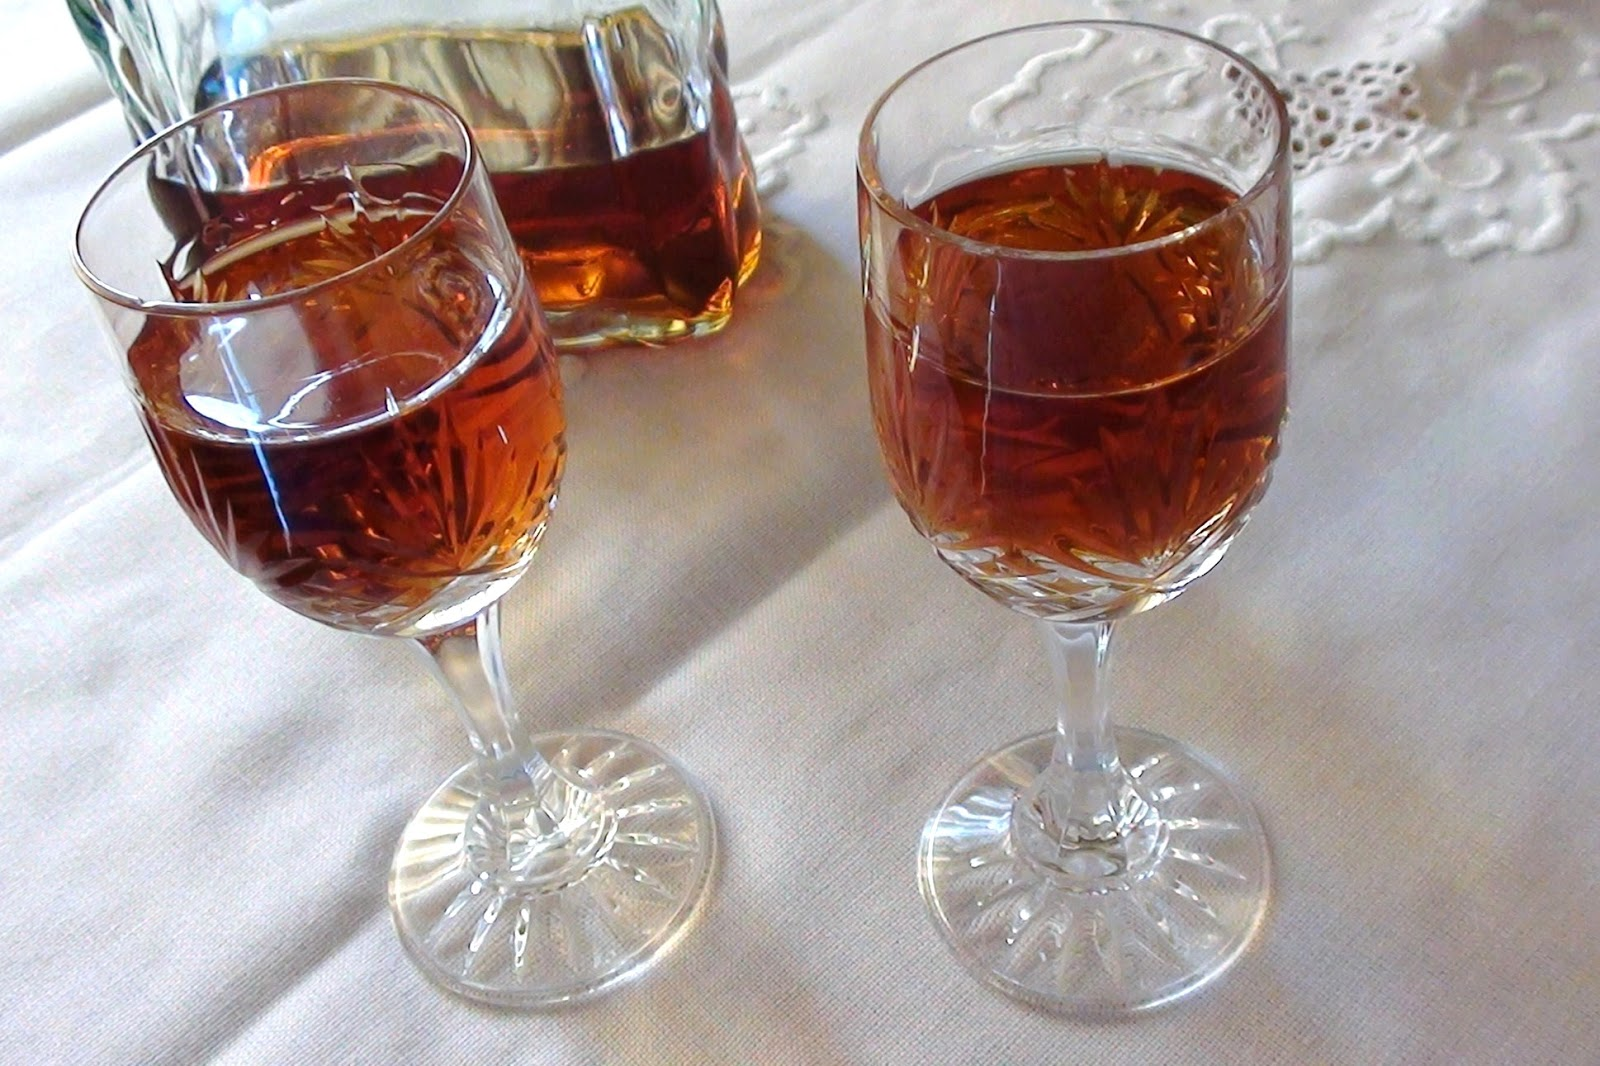 zsuzsa is in the kitchen: HOMEMADE AMARETTO LIQUEUR